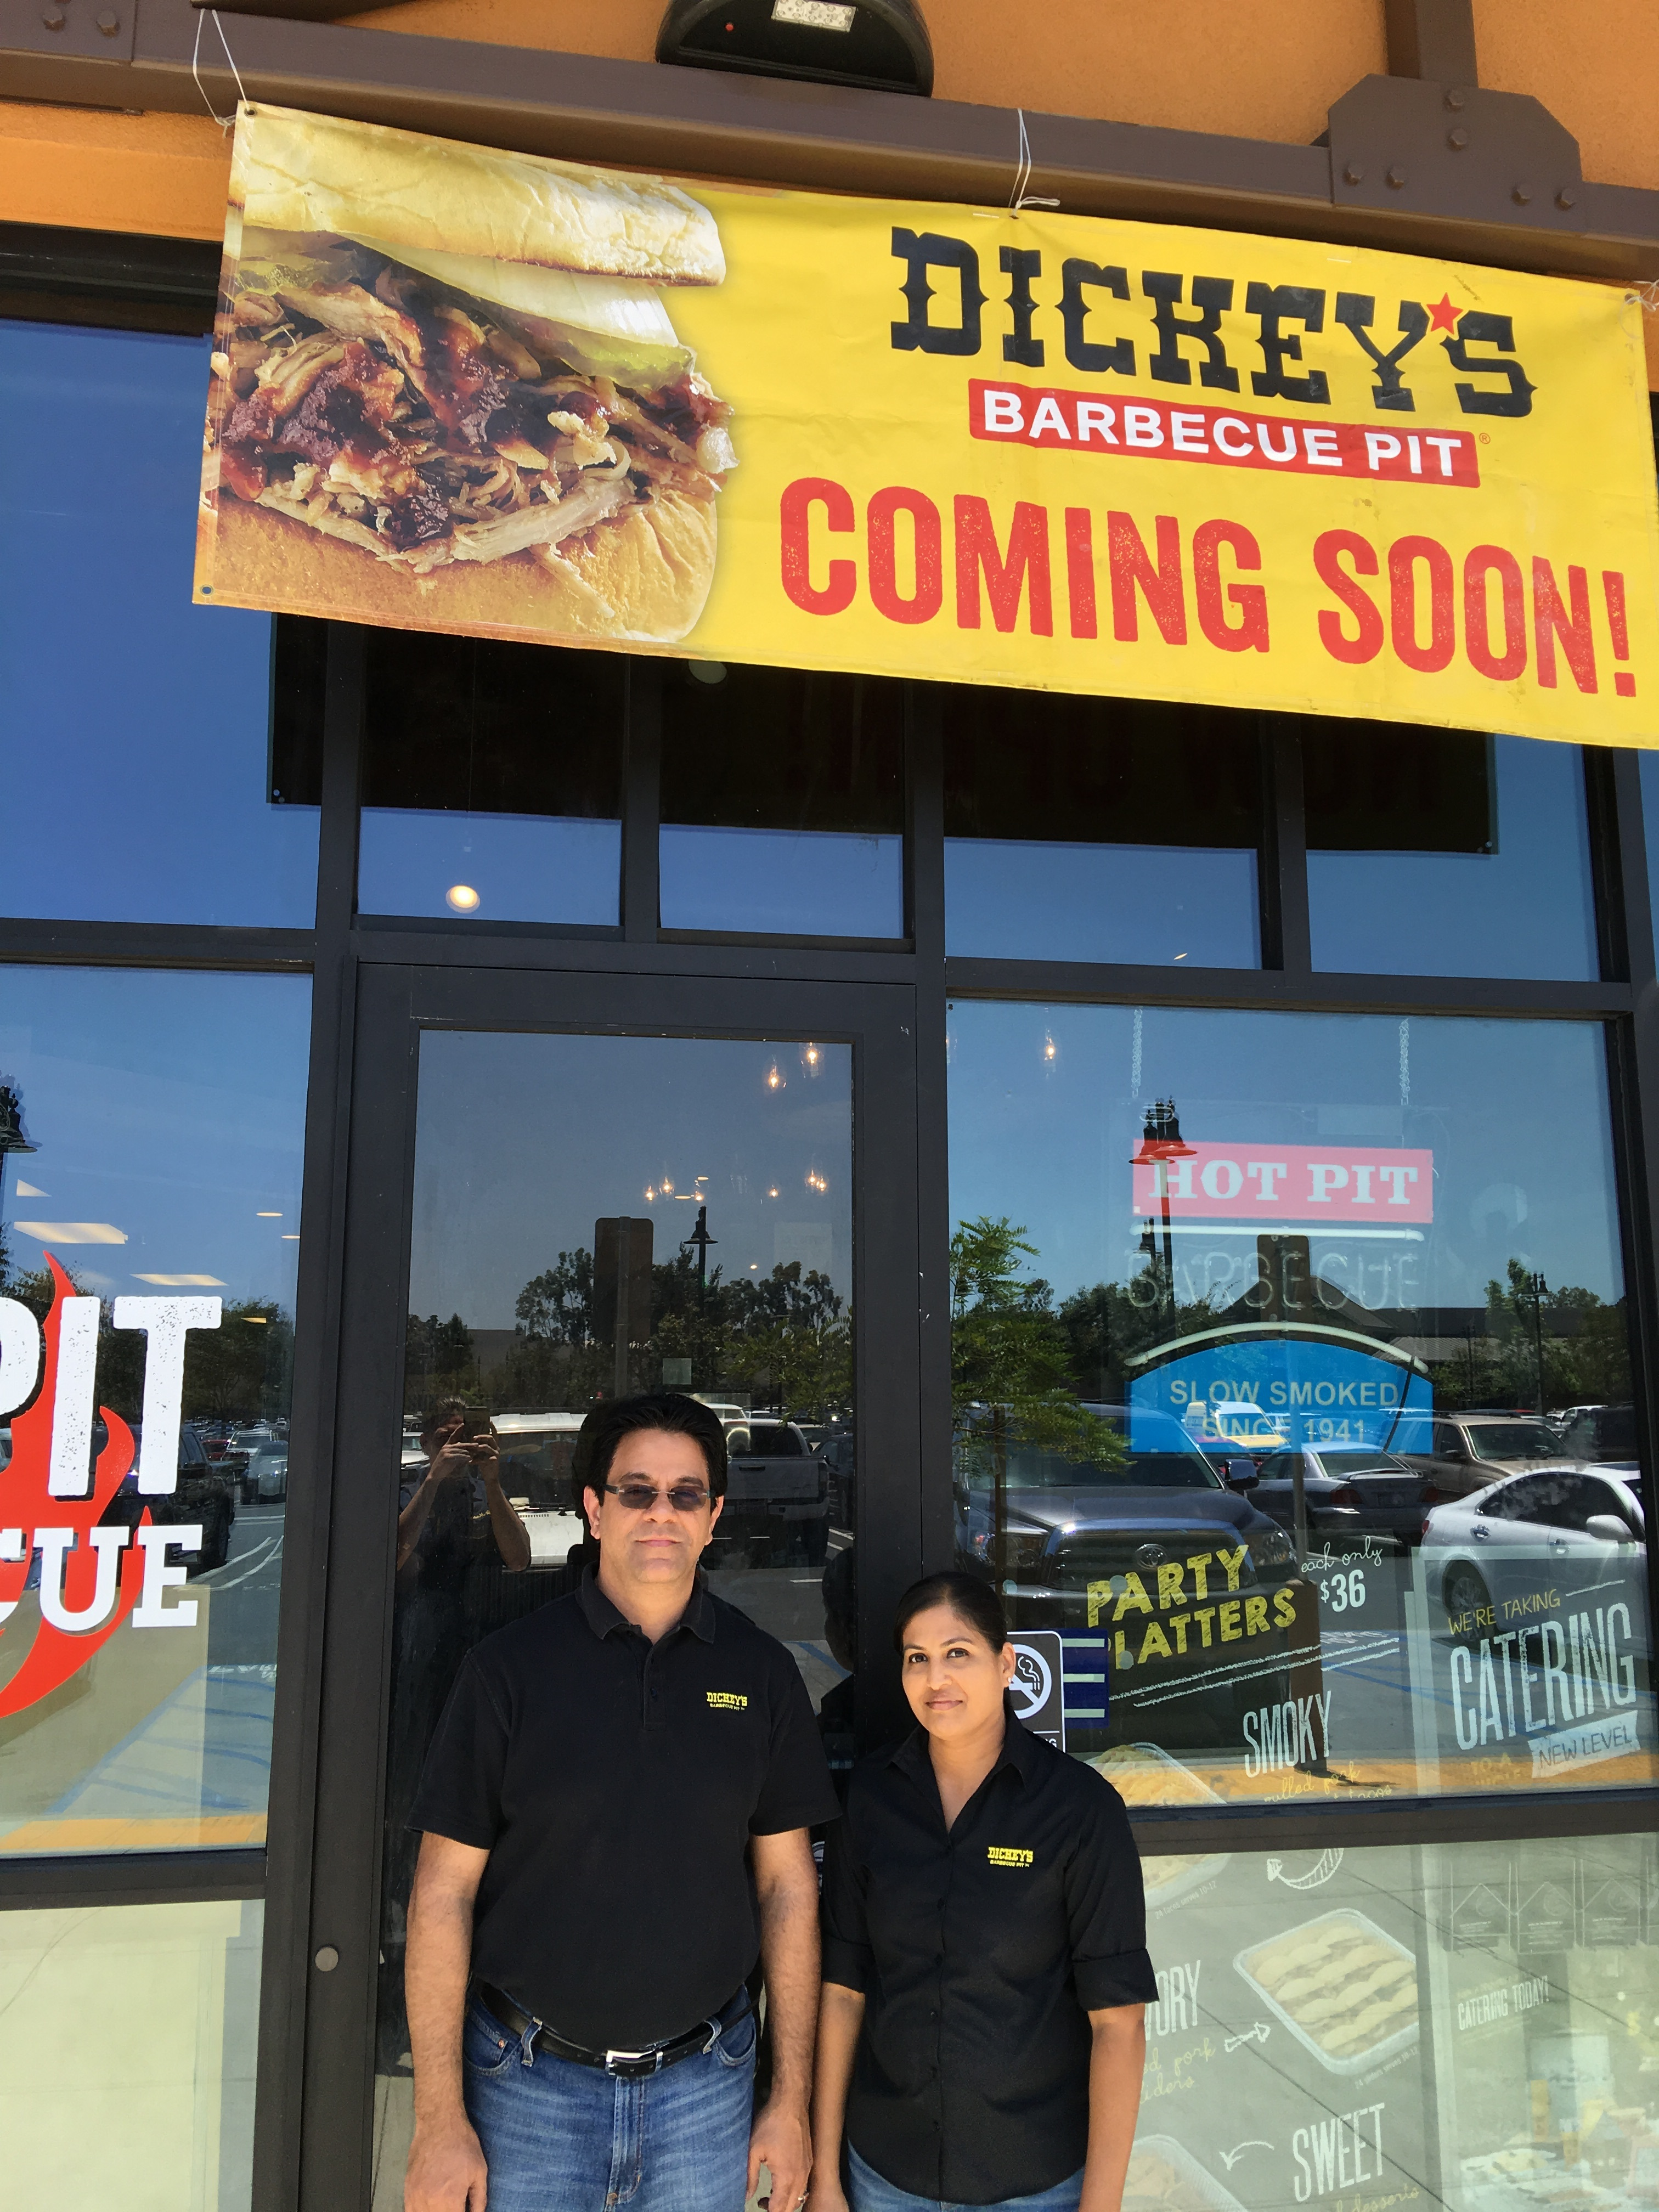 Dickey's Barbecue Pit Opens Thursday in San Dimas with Four Weeks of Smokin' Specials